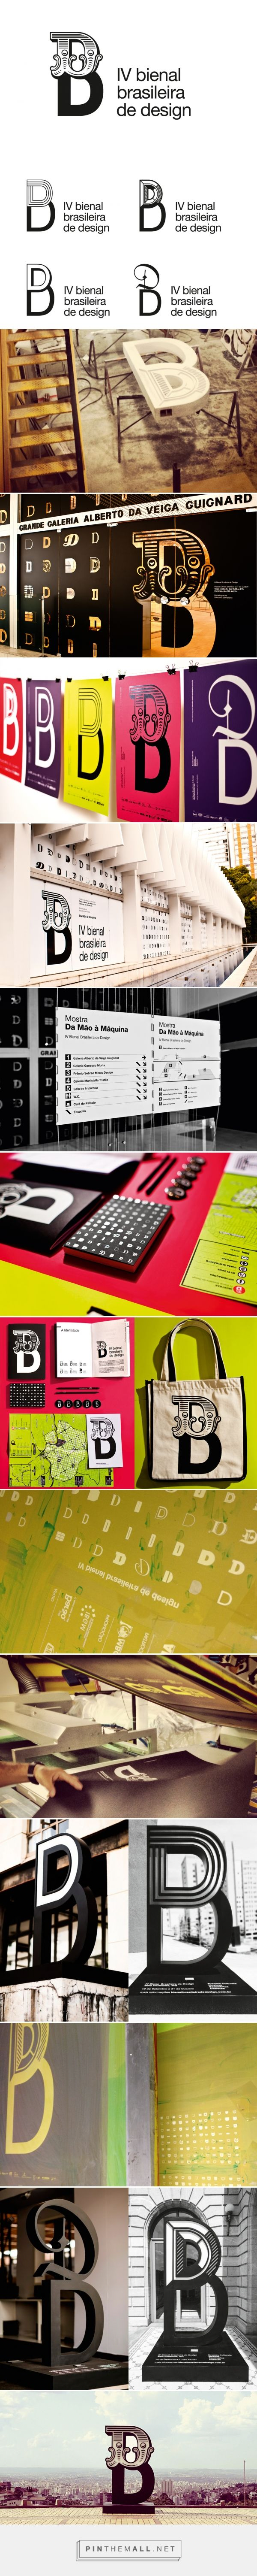 IV Bienal Brasileira de Design | Greco Design... - a grouped images picture - Pin Them All